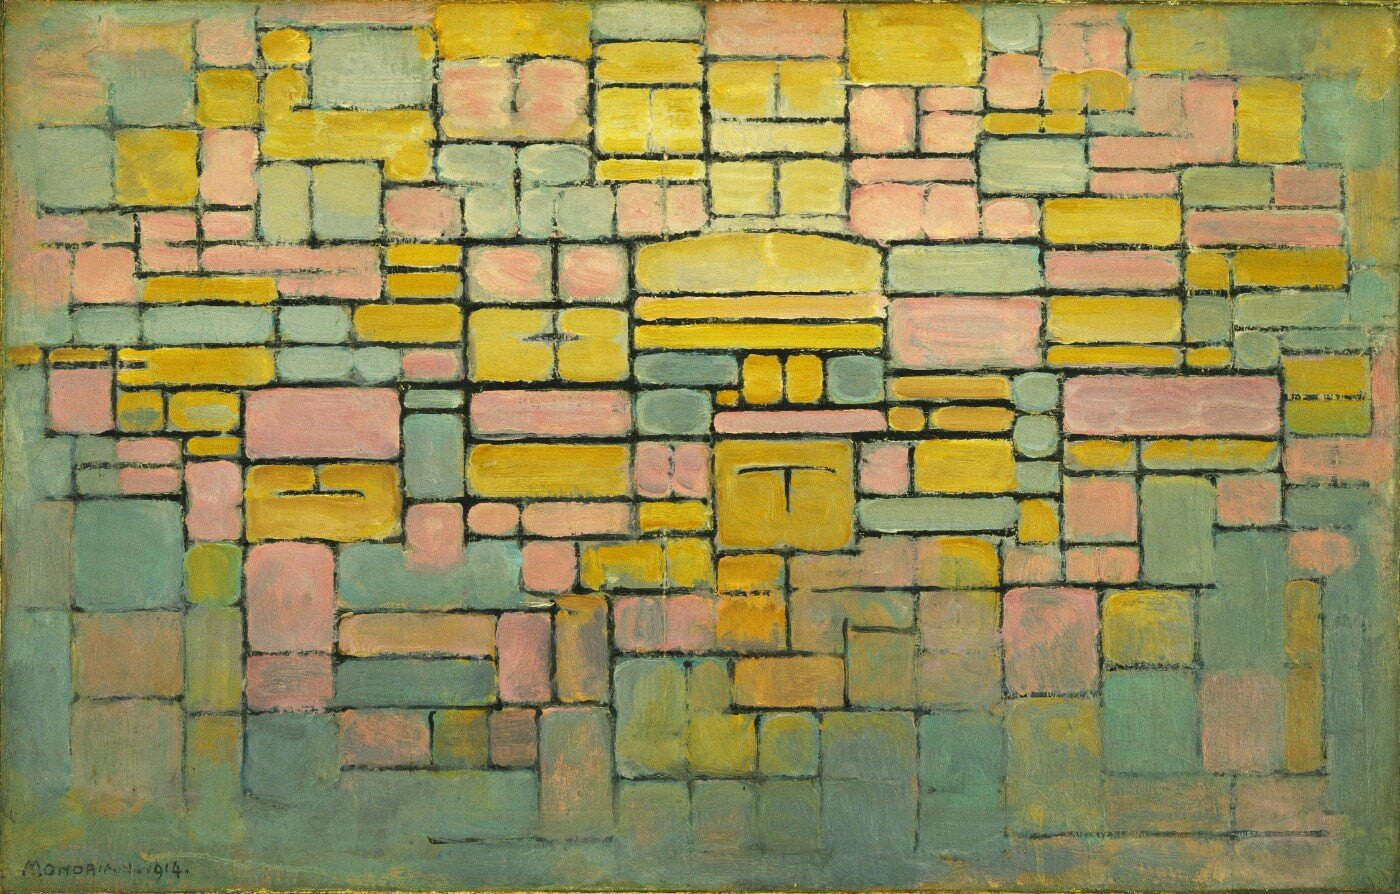 Tableau No. 2 - Posters by Piet Mondrian | Buy Posters, Frames ...